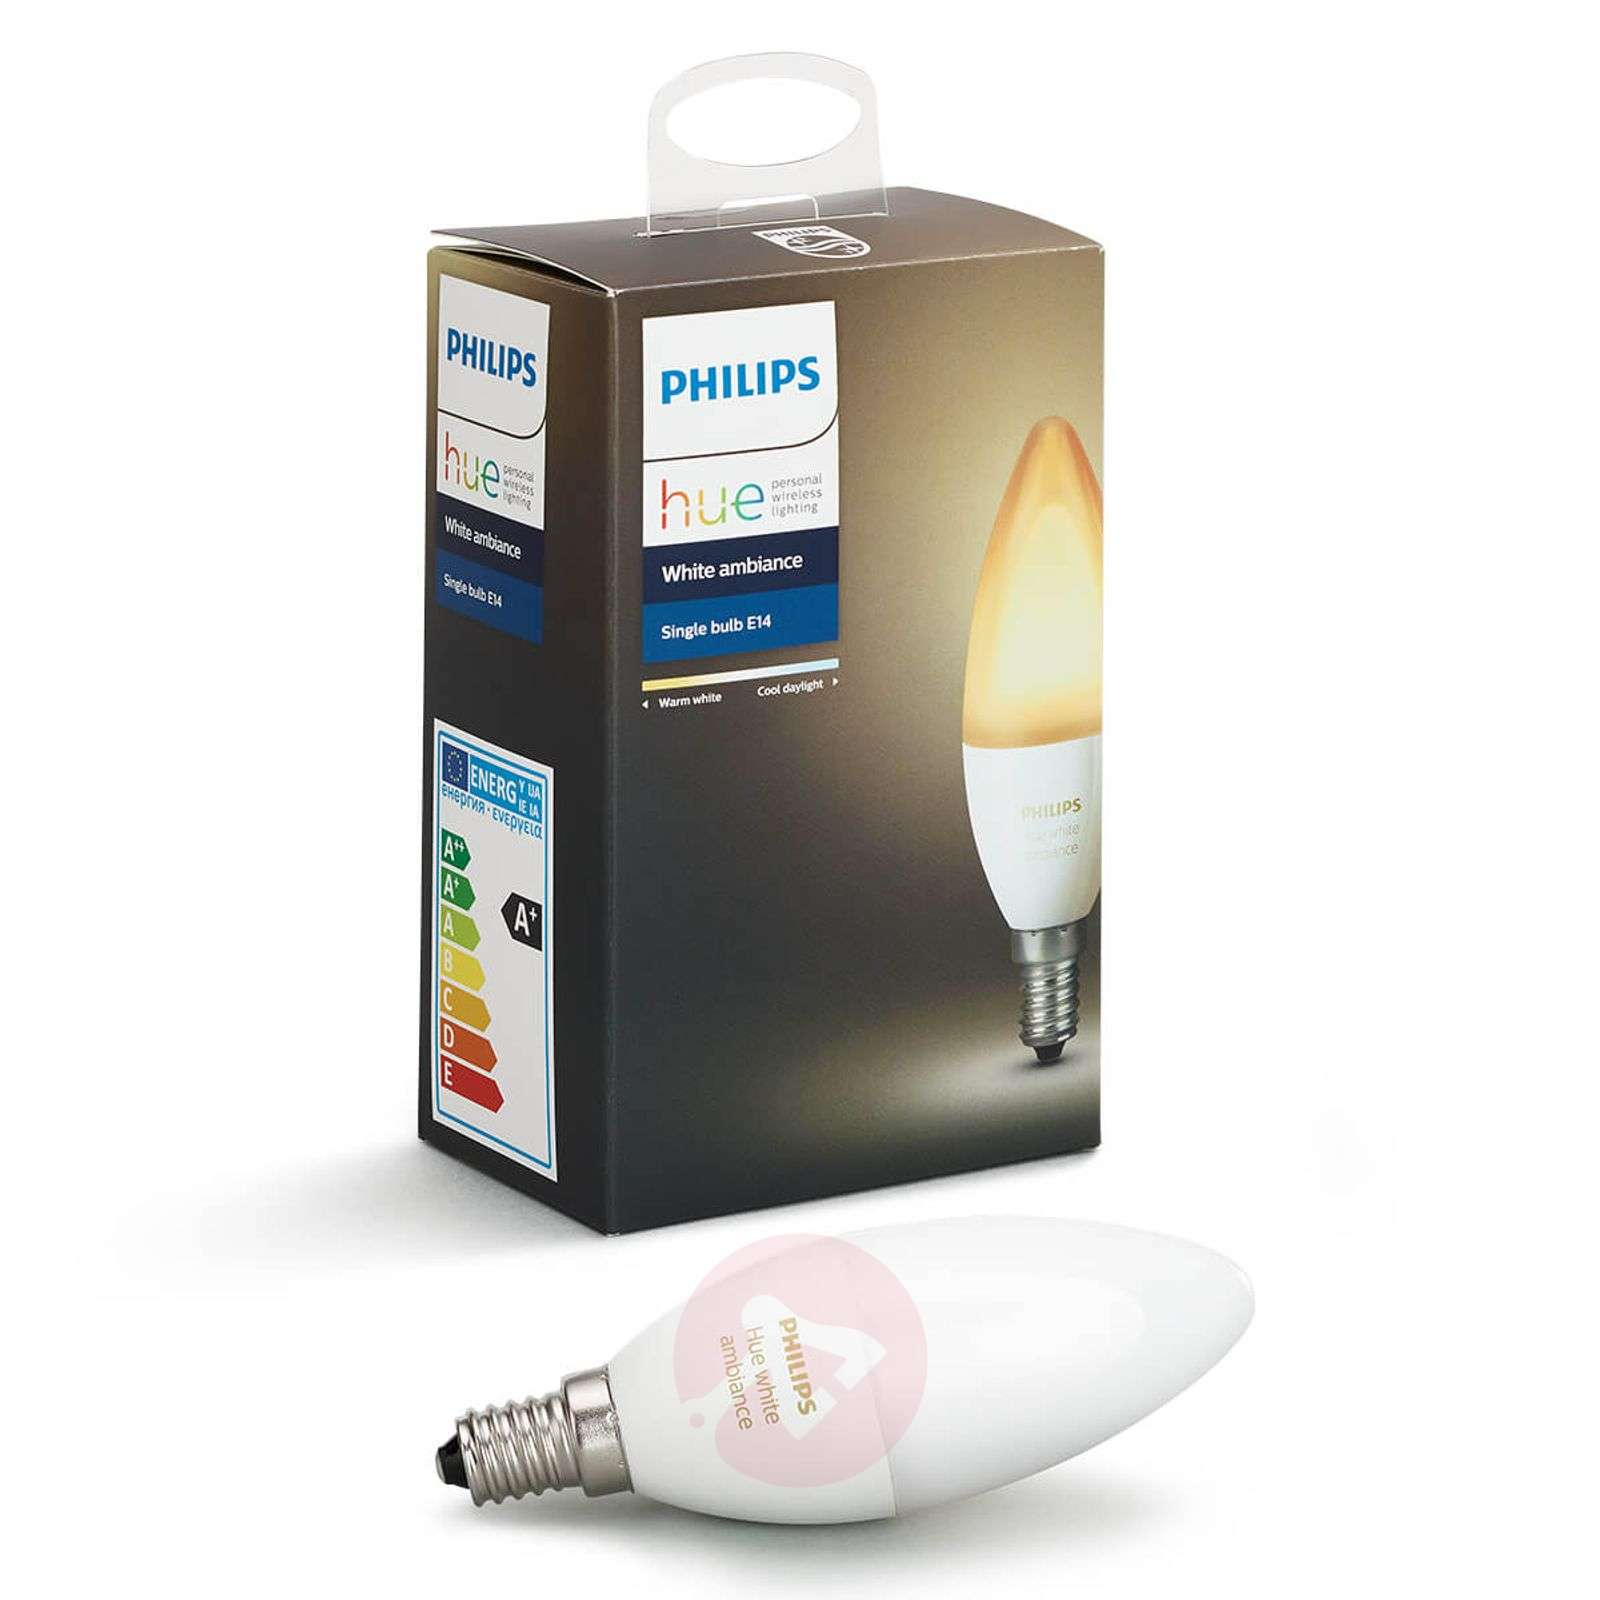 philips hue kaarslamp white ambiance e14 6w. Black Bedroom Furniture Sets. Home Design Ideas